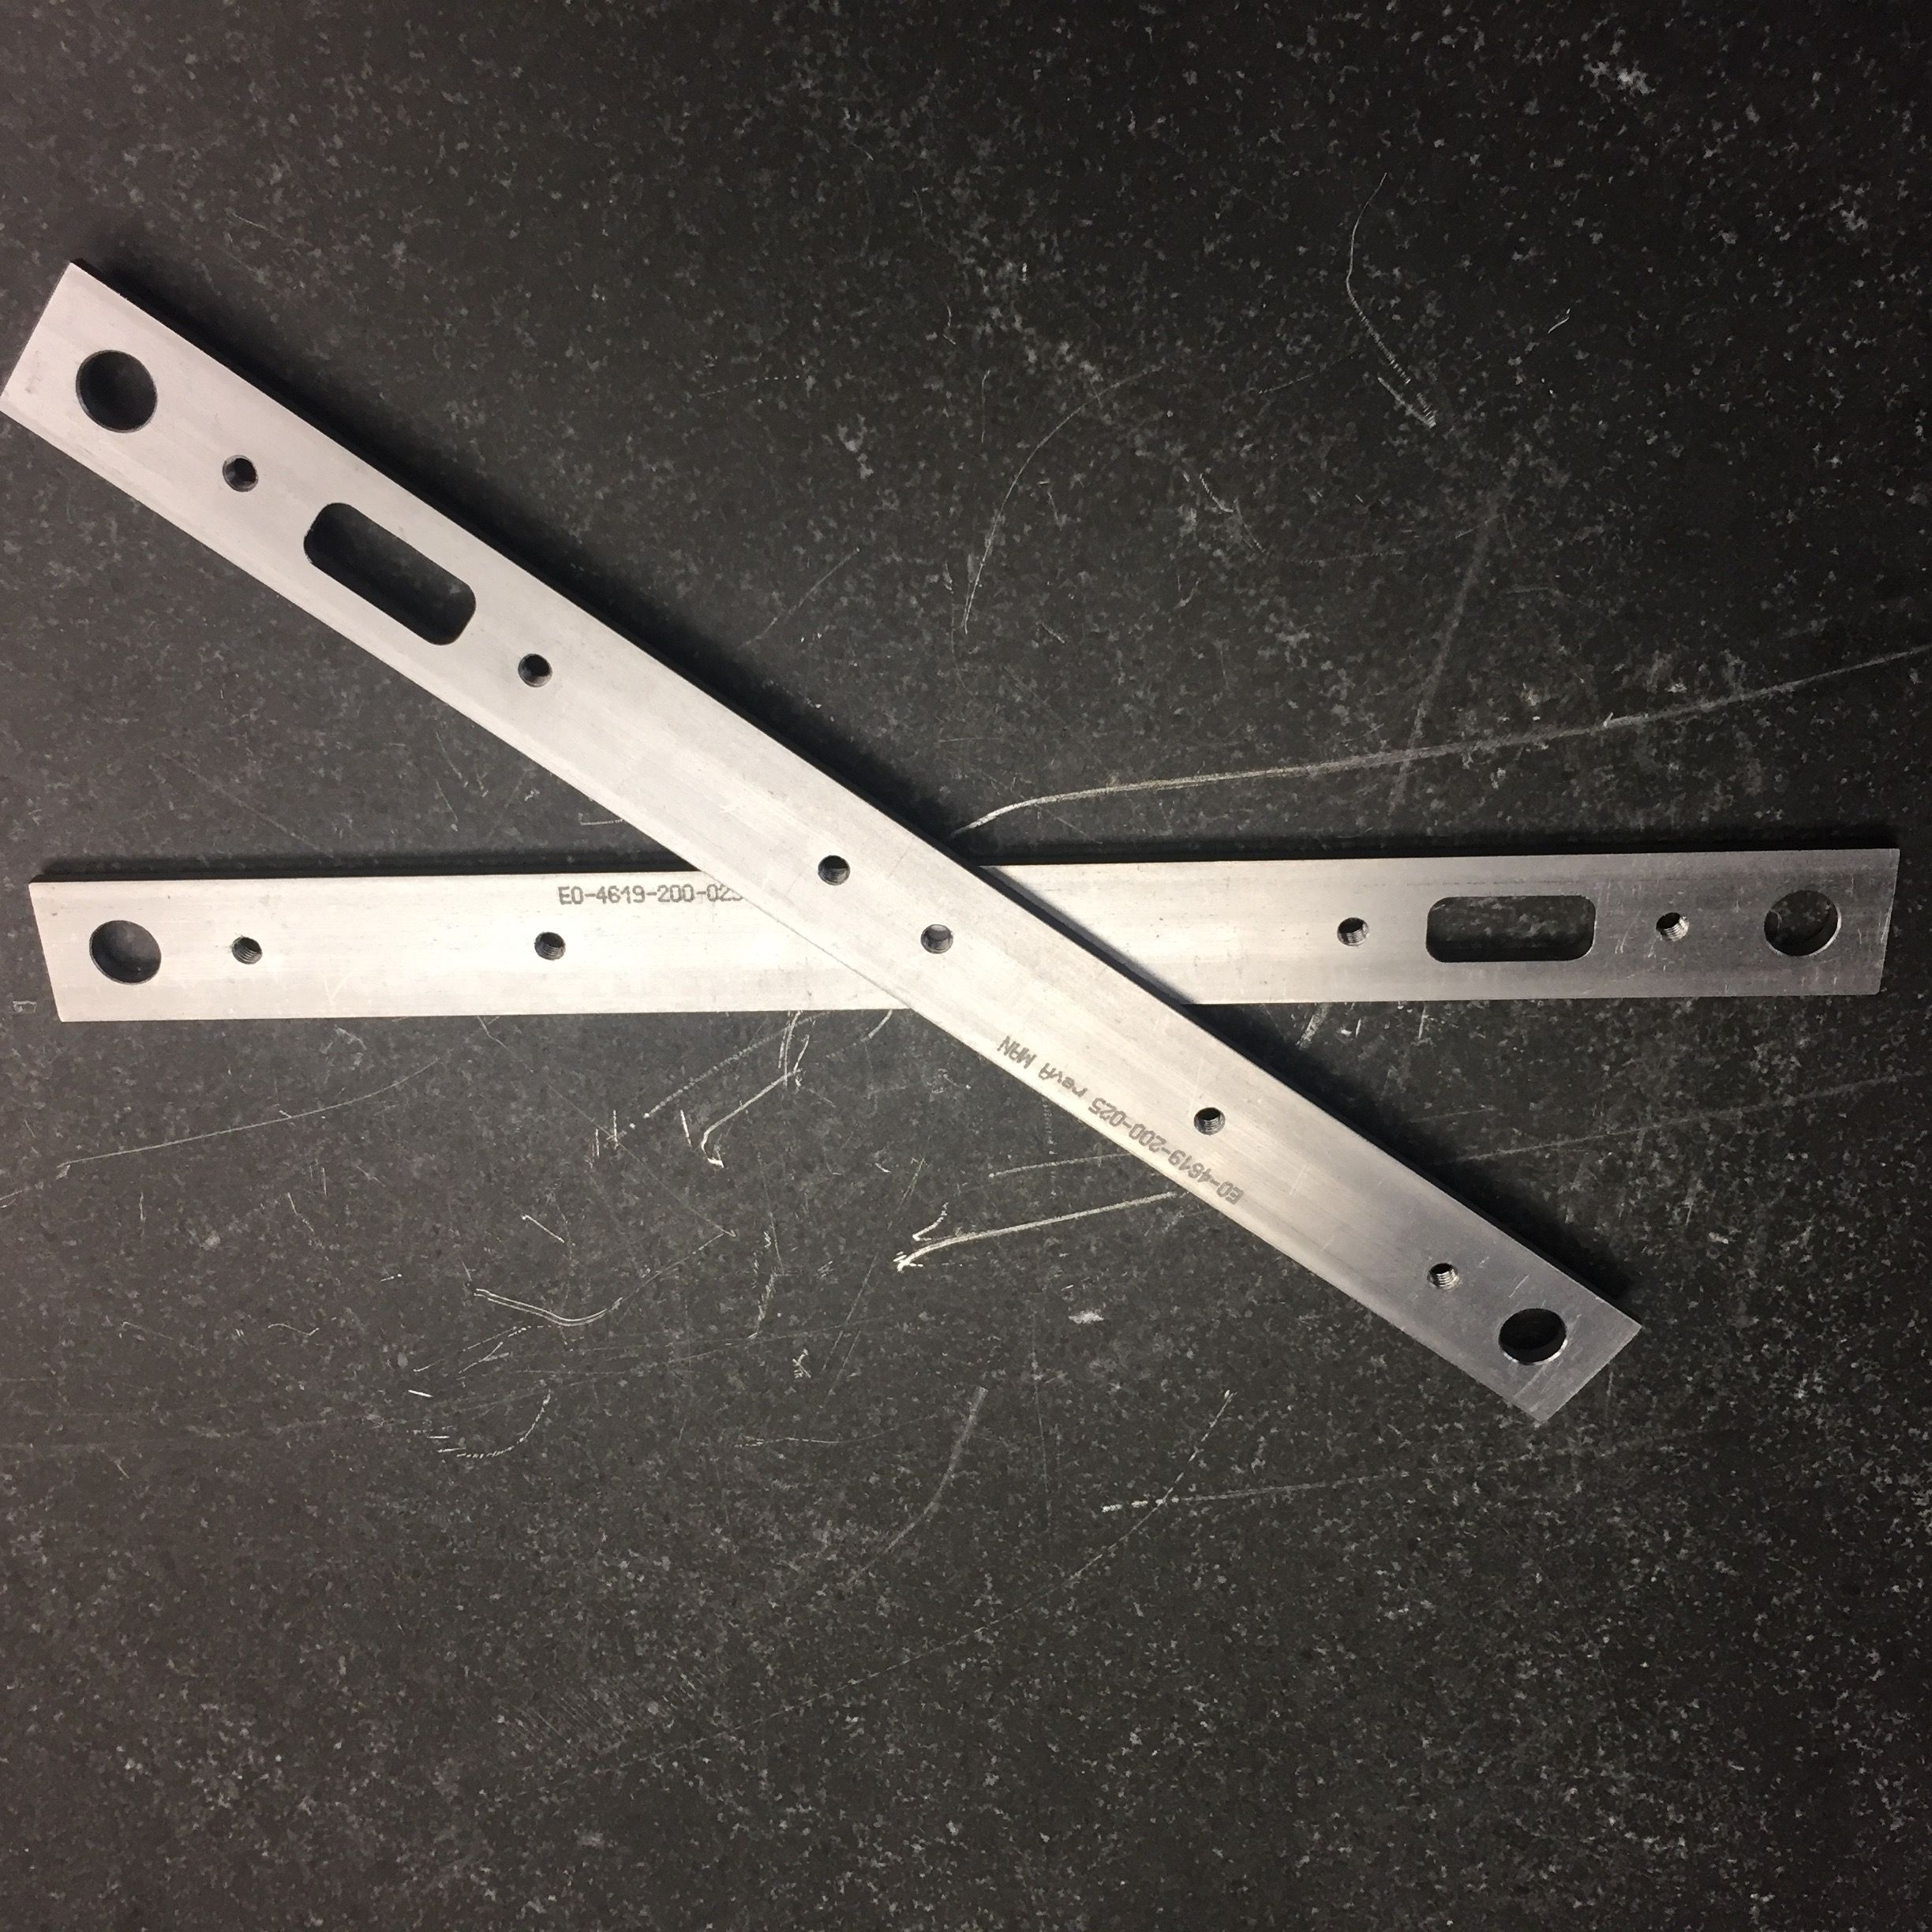 Long, machined aluminum bracket. #Manutec #MadeInUSA #MadeInAmerica #AmericanMade #MichiganMade #MadeInMichigan #Aluminum #MachinedAluminum #PrecisionMachined #CNC #CNCMill #PrecisionMilled #PrecisionMilling #Bracket #SupportBracket #MilledAluminum #Bridgeport #4Axis #3Axis #MultiAxis